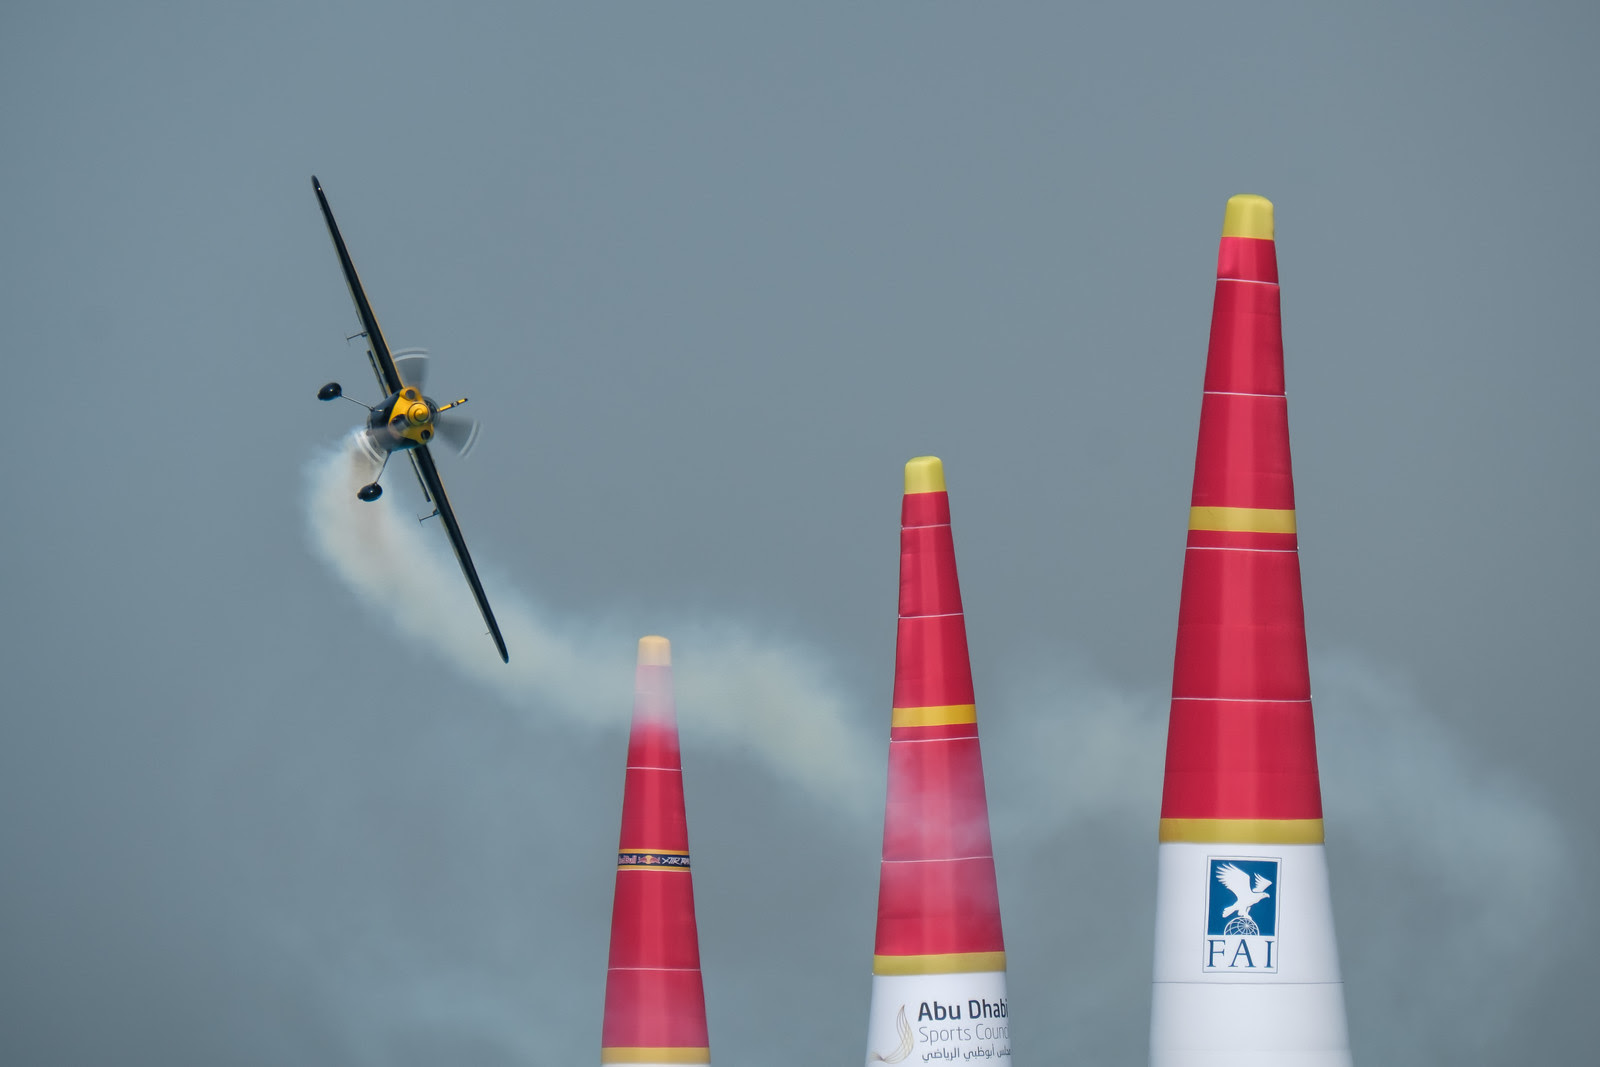 2016 RED BULL AIR RACES - ABU DHABI